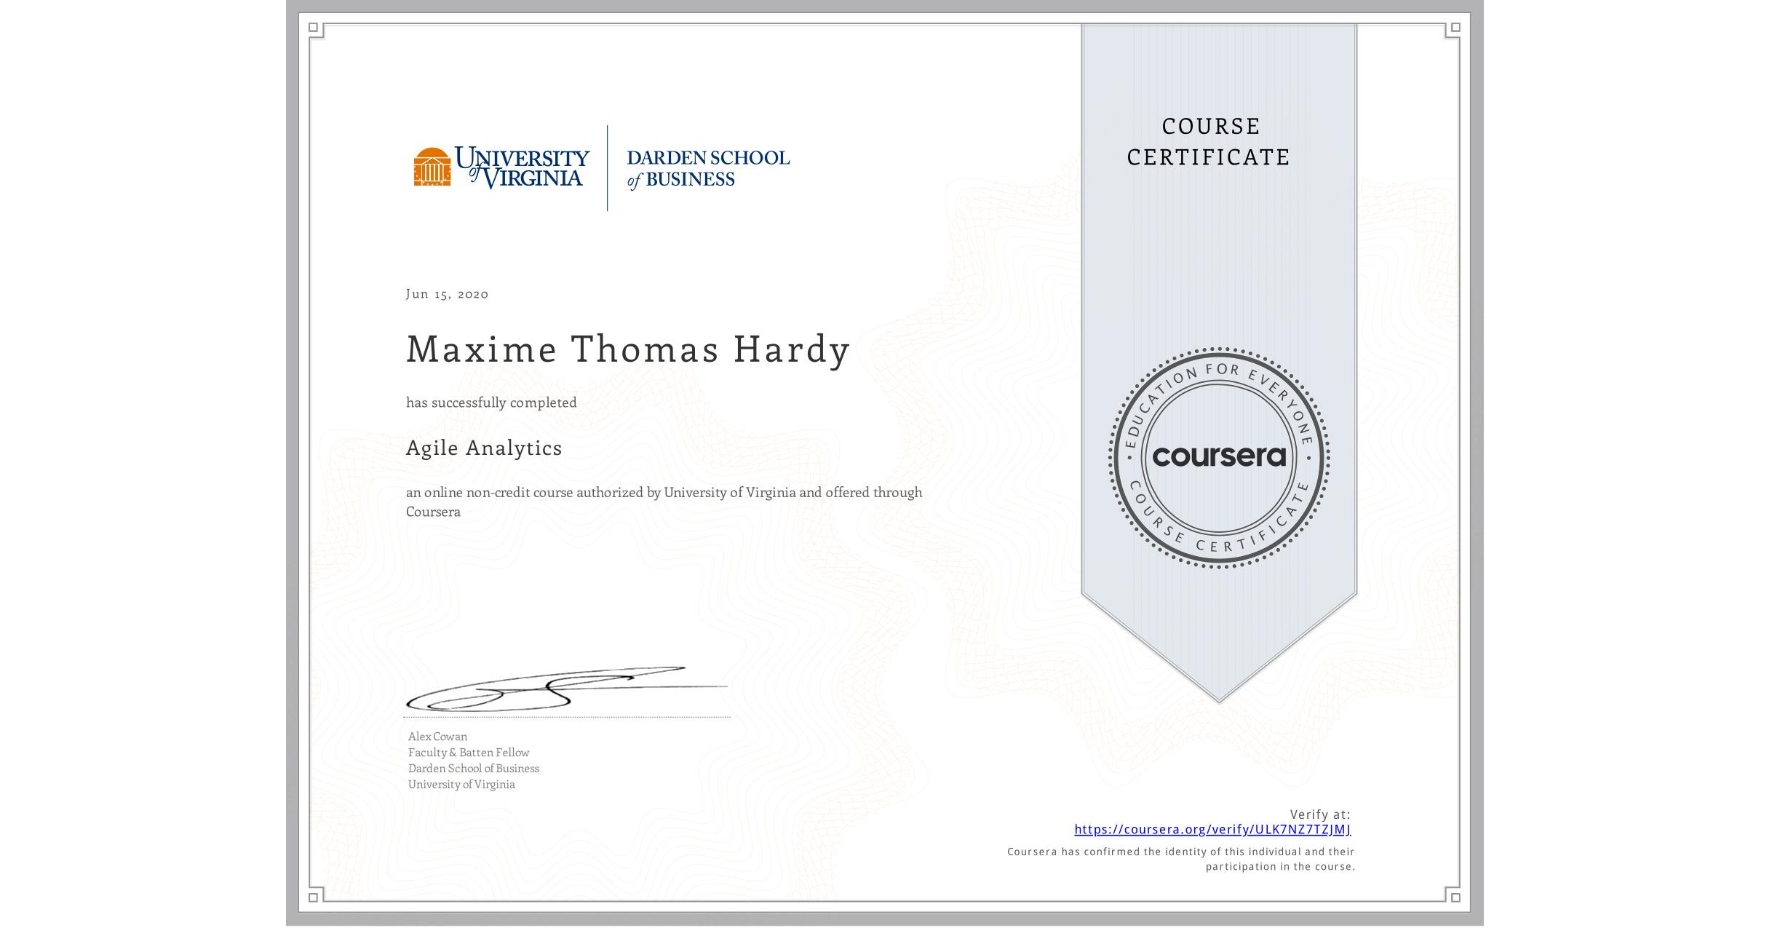 View certificate for Maxime Thomas Hardy, Agile Analytics, an online non-credit course authorized by University of Virginia and offered through Coursera